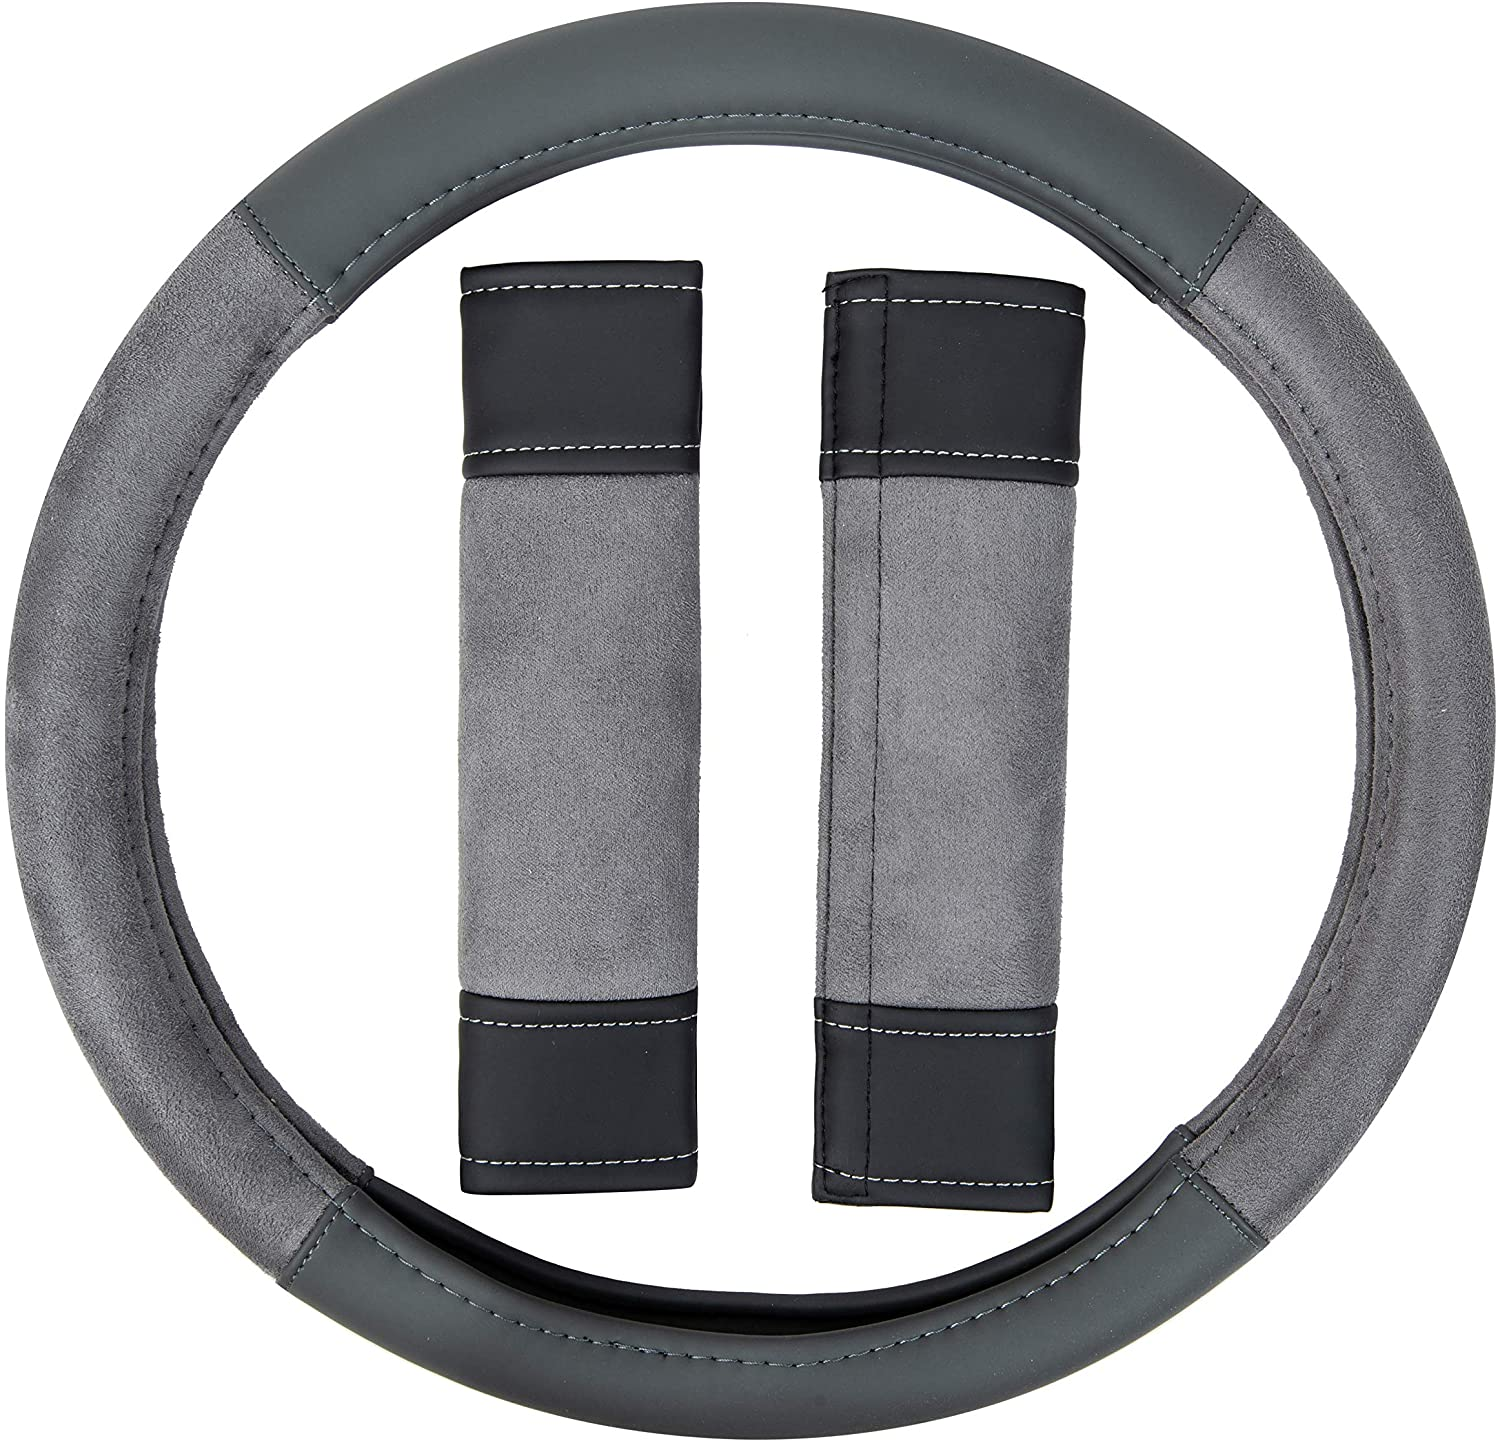 Basics Leatherette Steering Wheel Cover 15/″ Black 38.1 cm